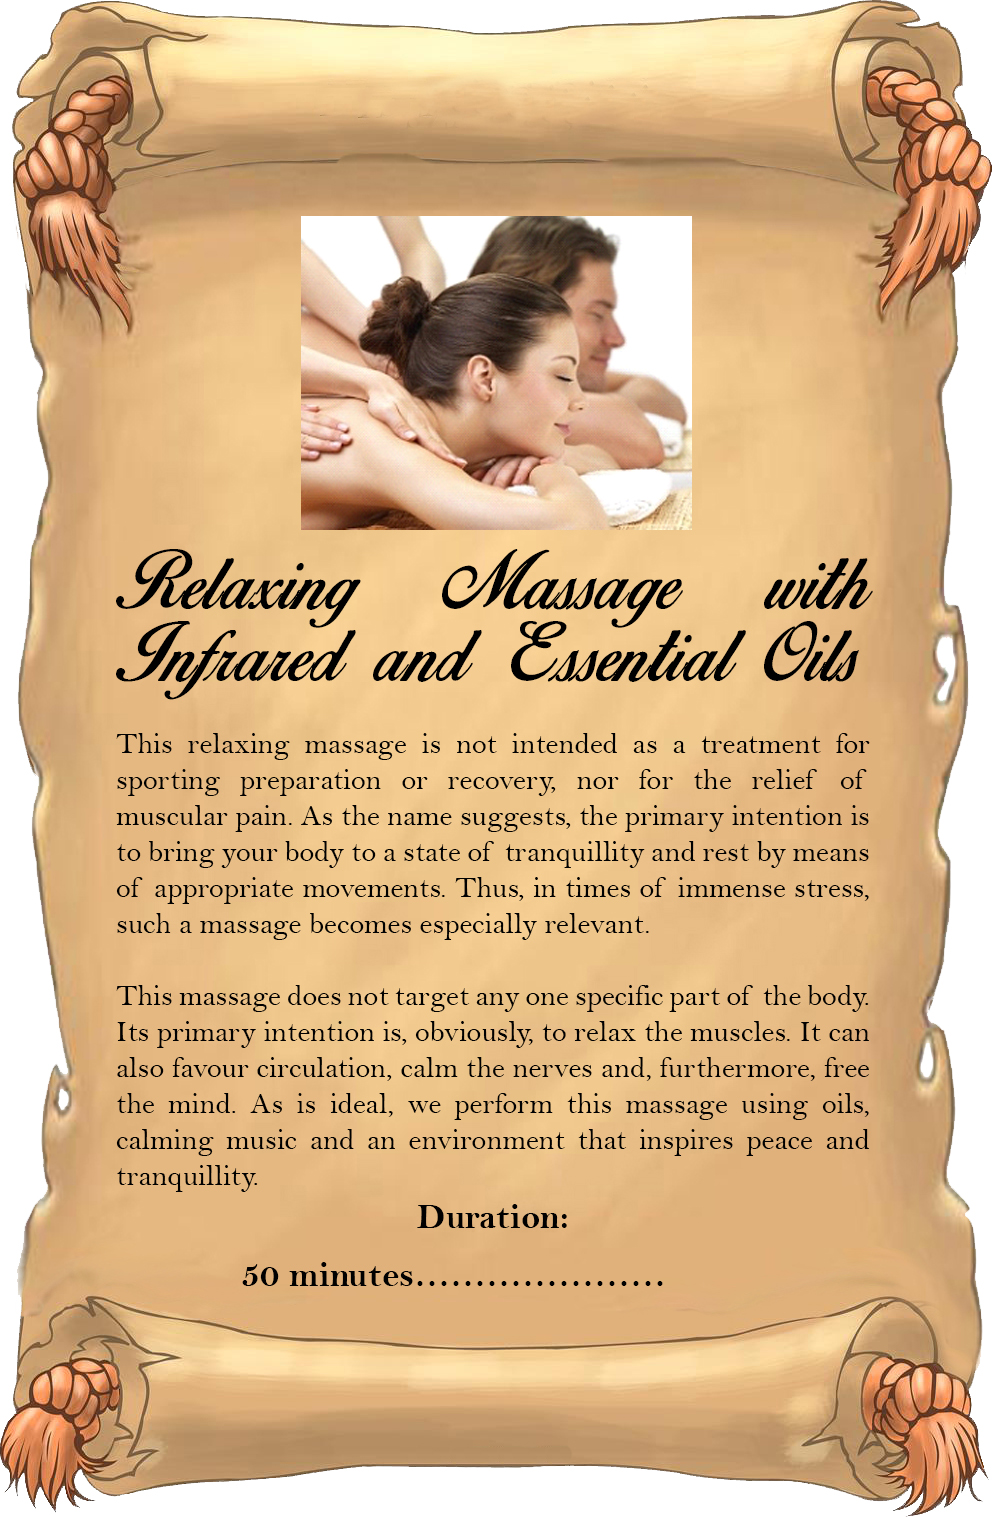 Relaxing_Massage_with_Infrared_and_Essential_Oils[1]